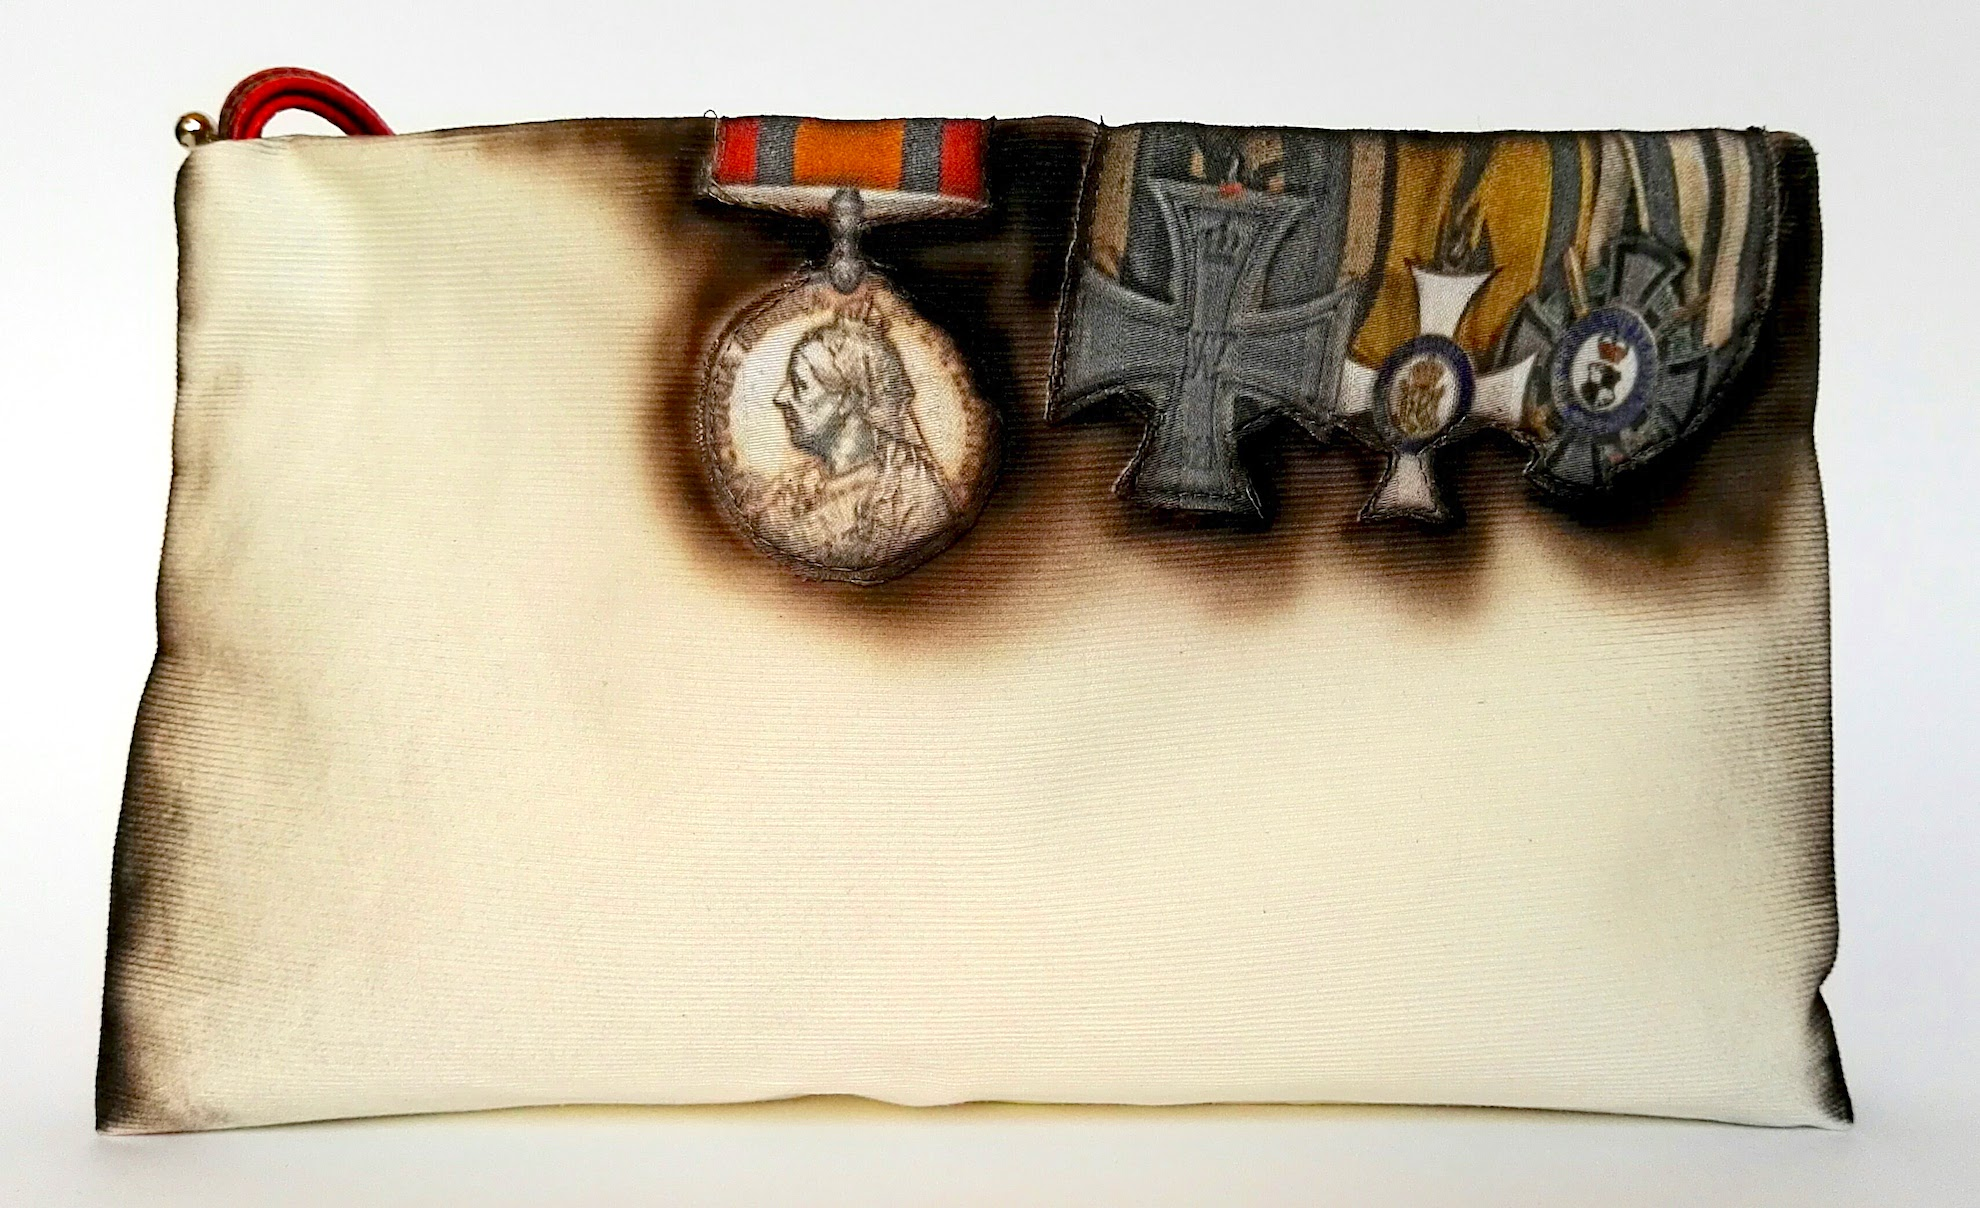 ARMY MEDALS PURSE WITH AIR BRUSH PEINTED